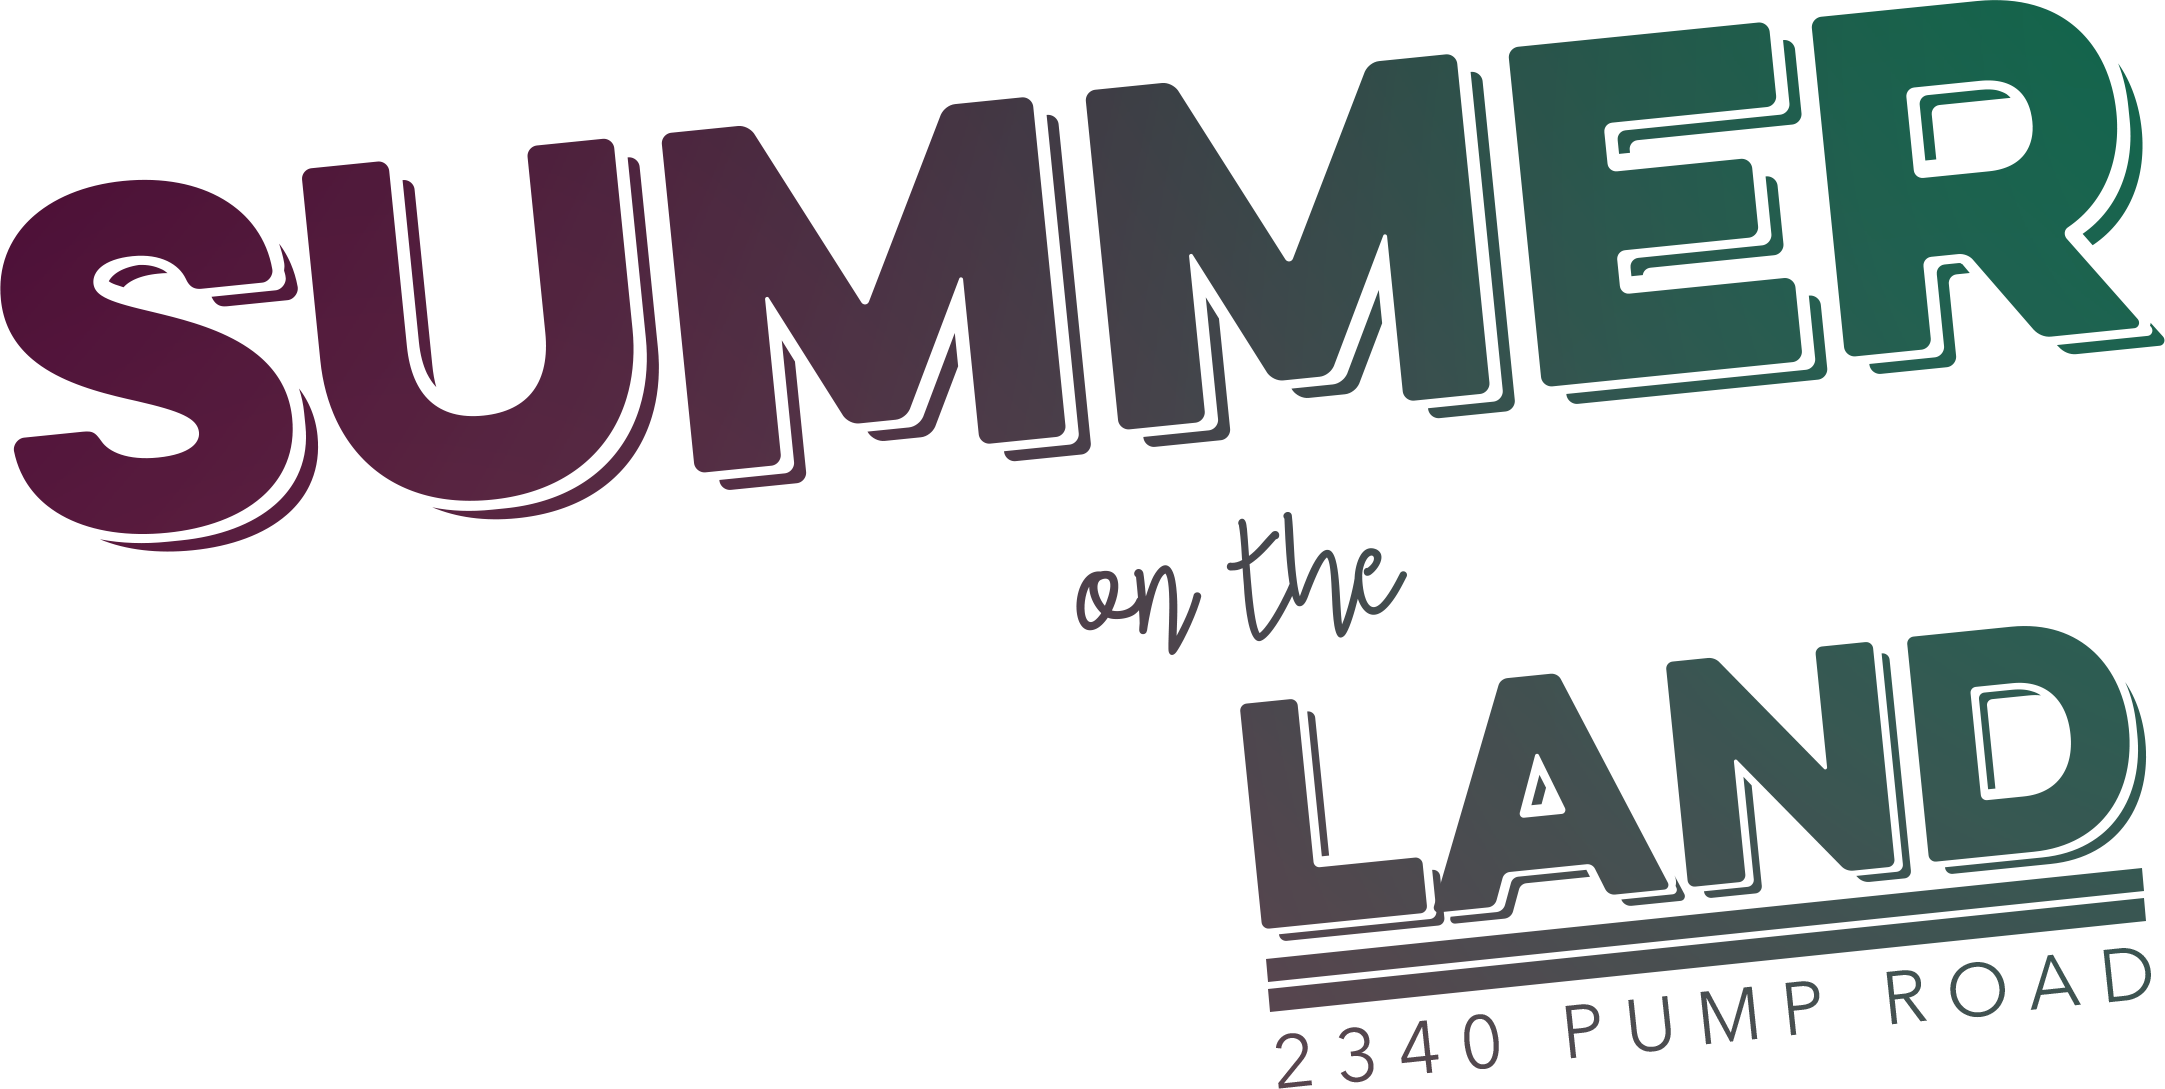 Community west is here. July clipart summer fun